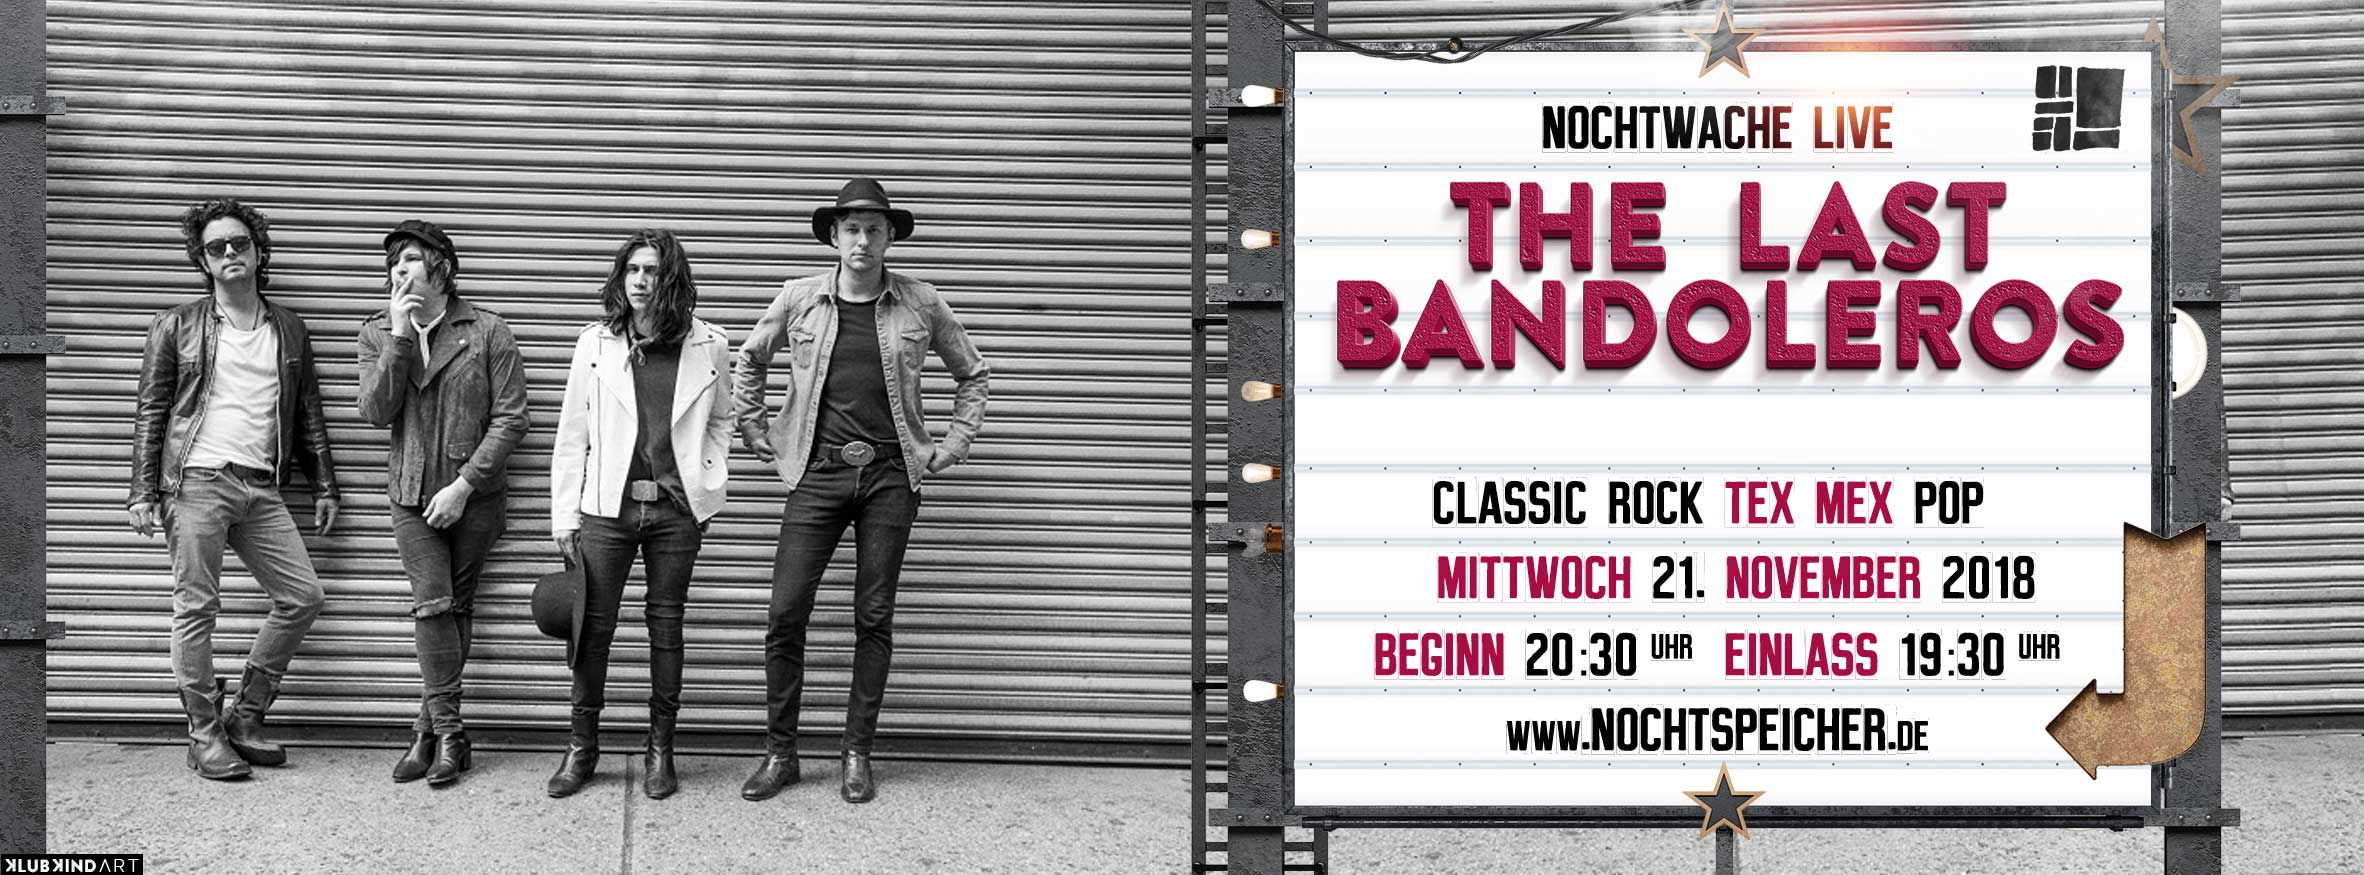 THE LAST BANDOLEROS (USA)